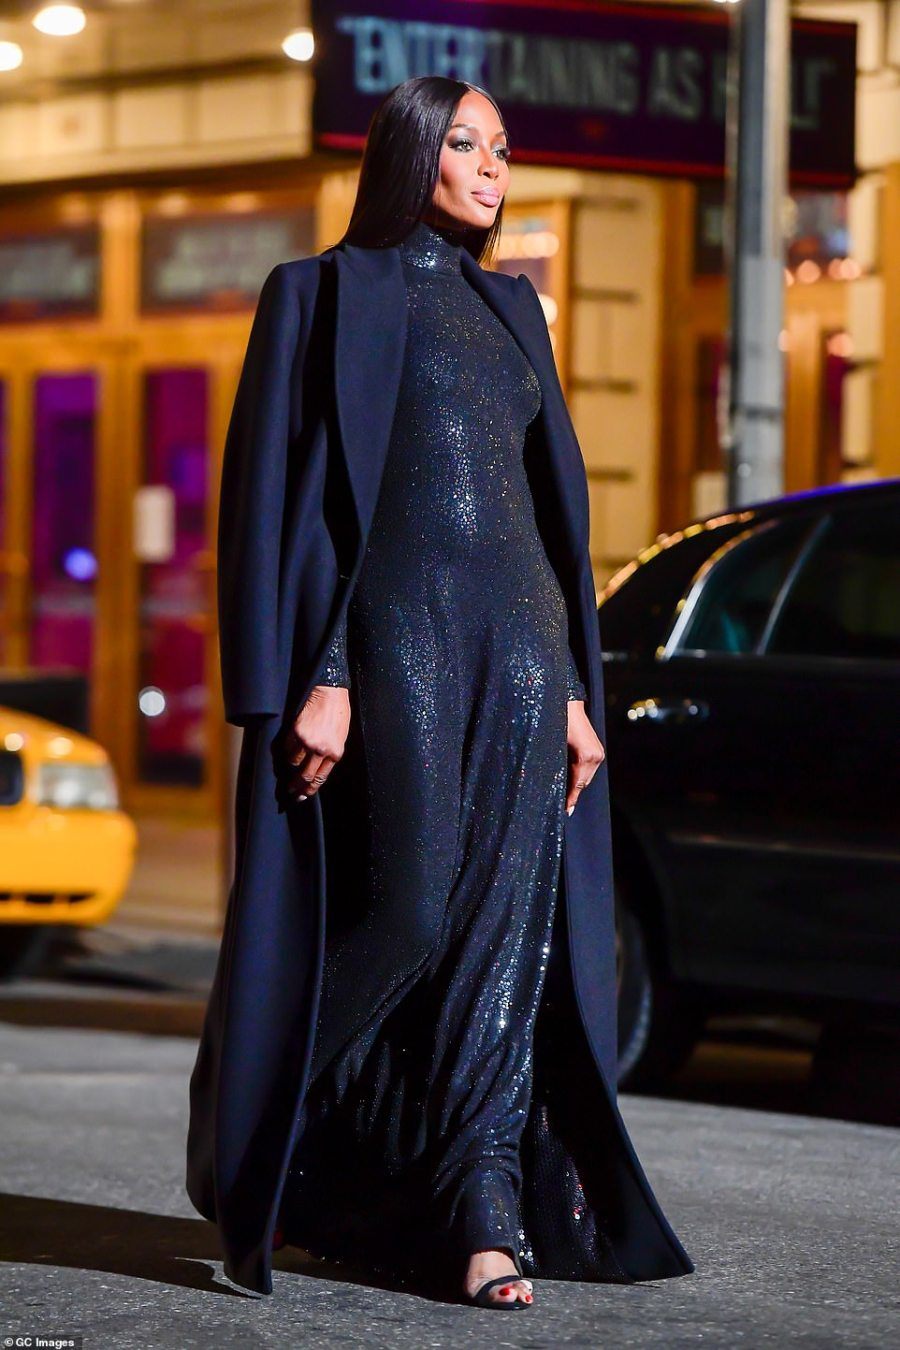 Conservative: The outfit reached all the way up to her chin and down to the ground and featured long sleeves. She wore it with a large black overcoat